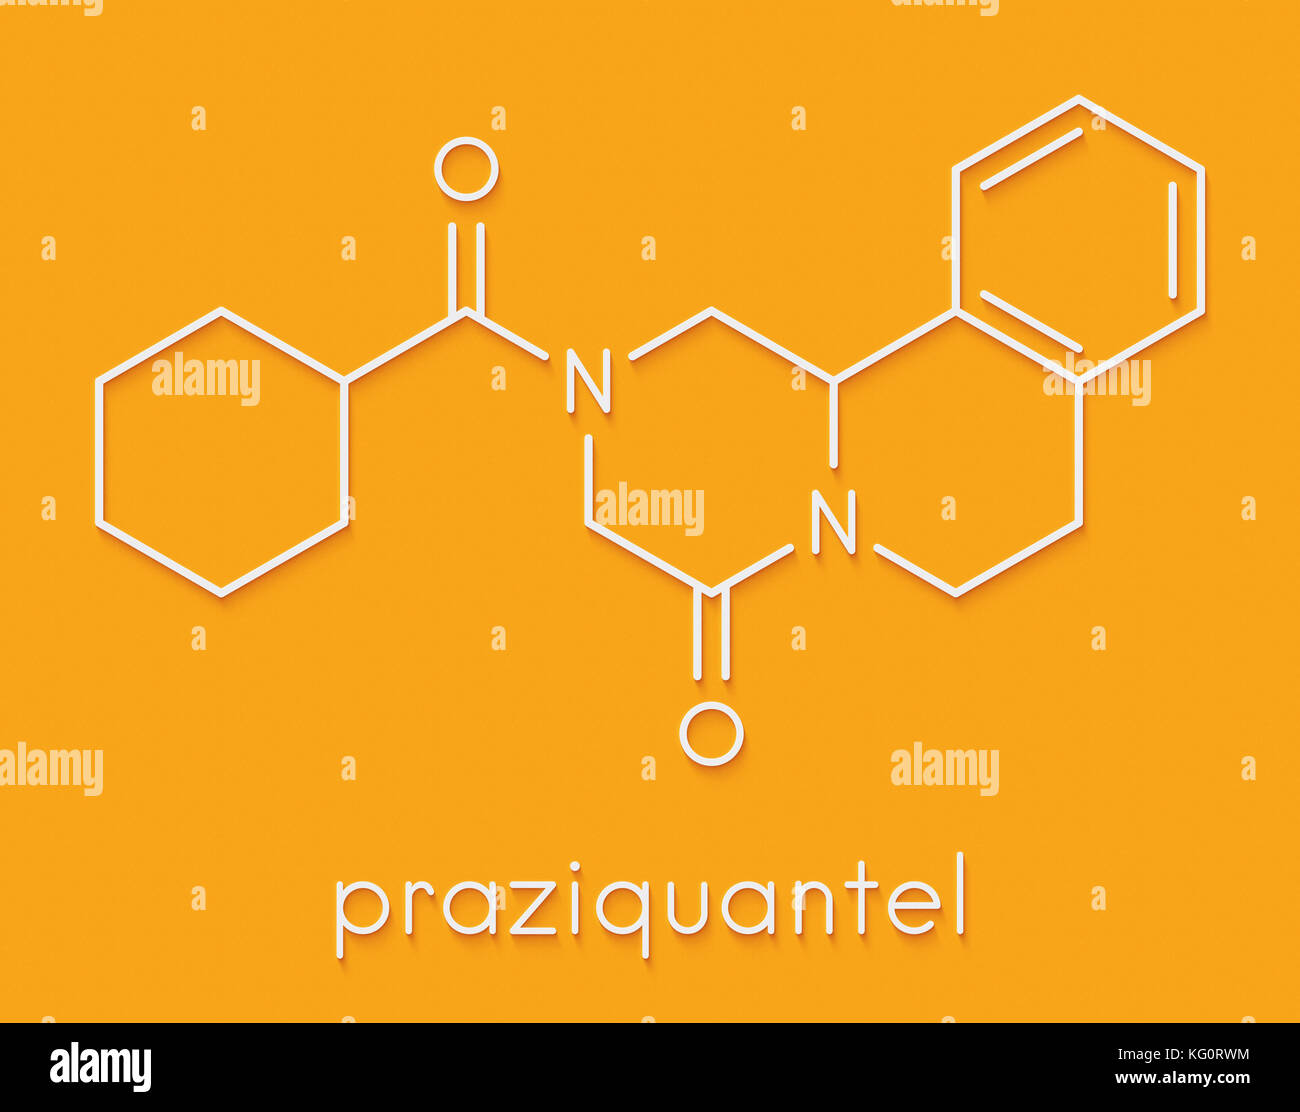 Tapeworm stock photos tapeworm stock images alamy praziquantel anthelmintic drug molecule used to treat tapeworm infections skeletal formula stock pooptronica